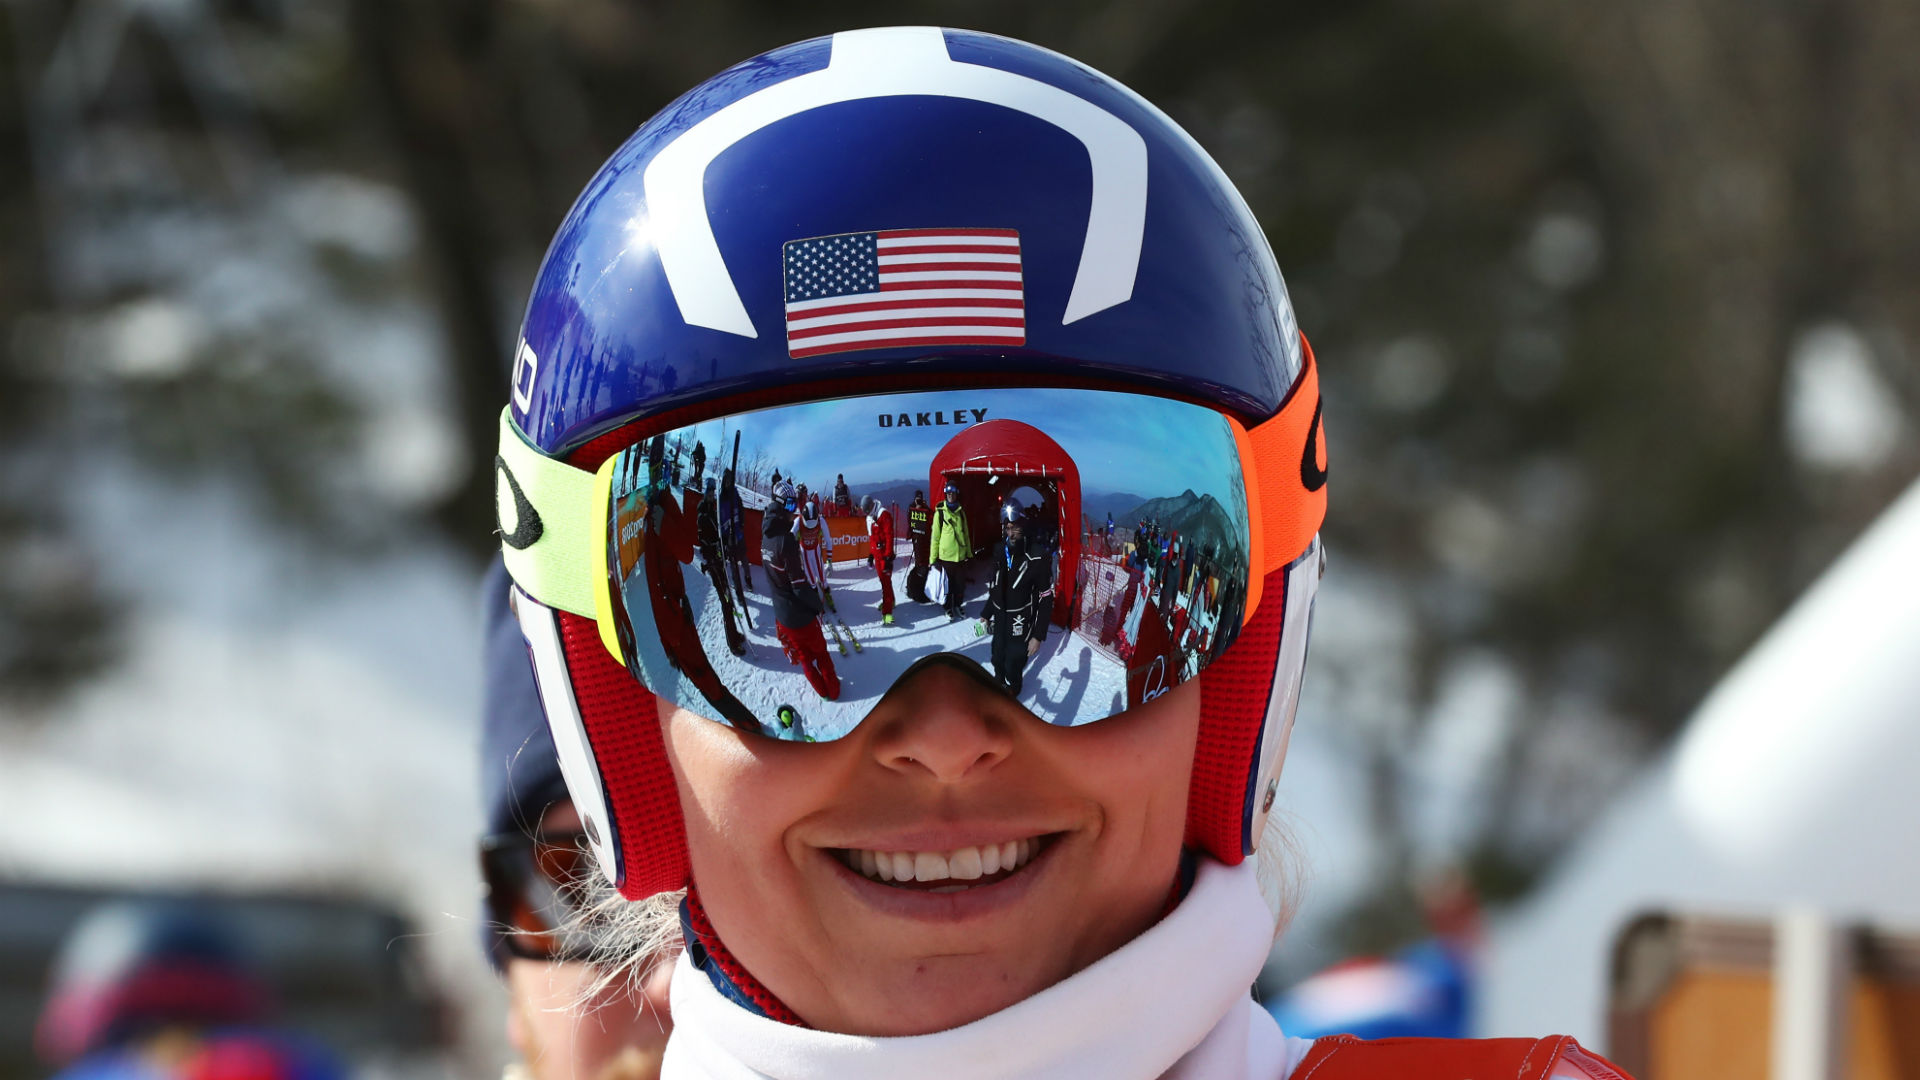 Shiffrin, Vonn miss out on gold in the Olympics alpine combined